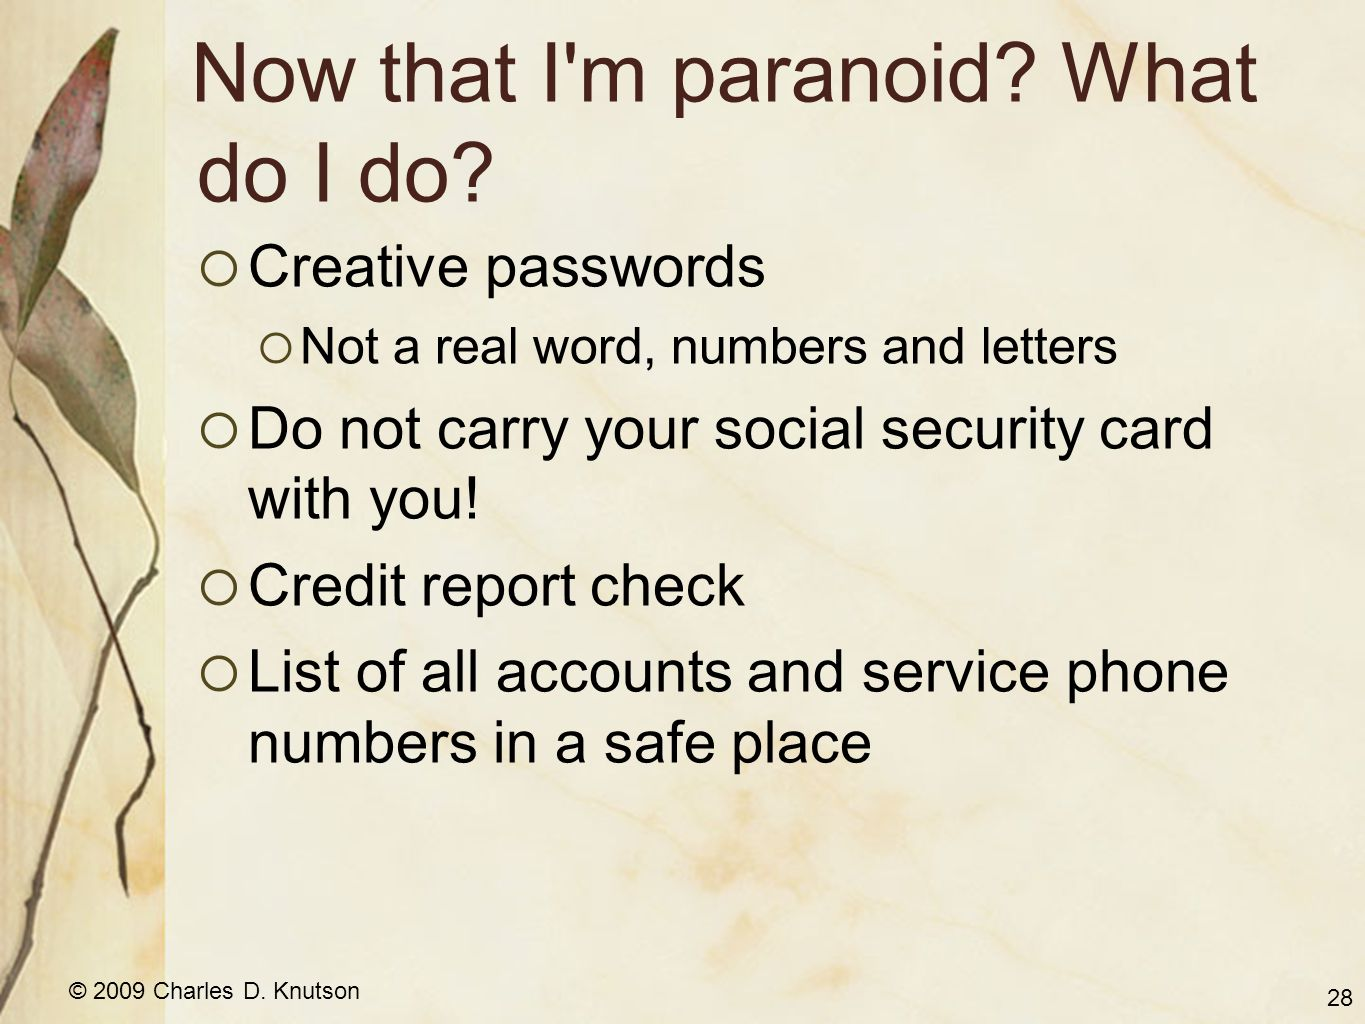 © 2009 Charles D. Knutson Now that I'm paranoid? What do I do? Creative passwords Not a real word, numbers and letters Do not carry your social securi